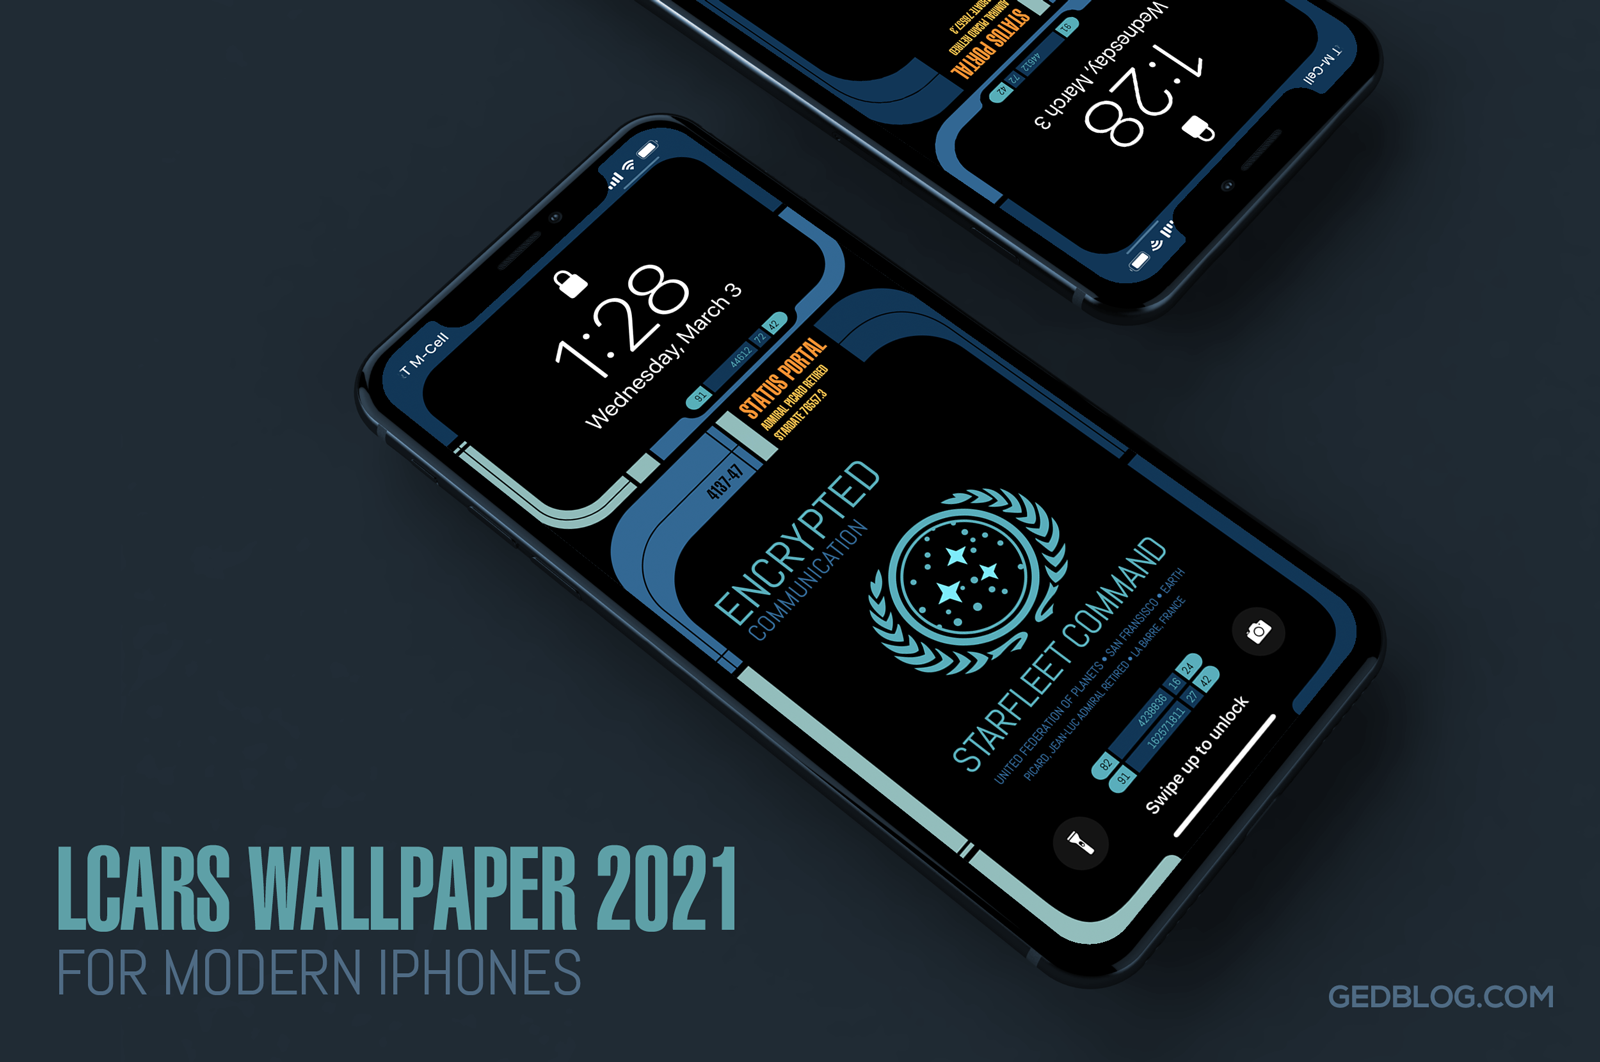 iPhone lock screen showing the Star Trek LCARS 2021 wallpaper